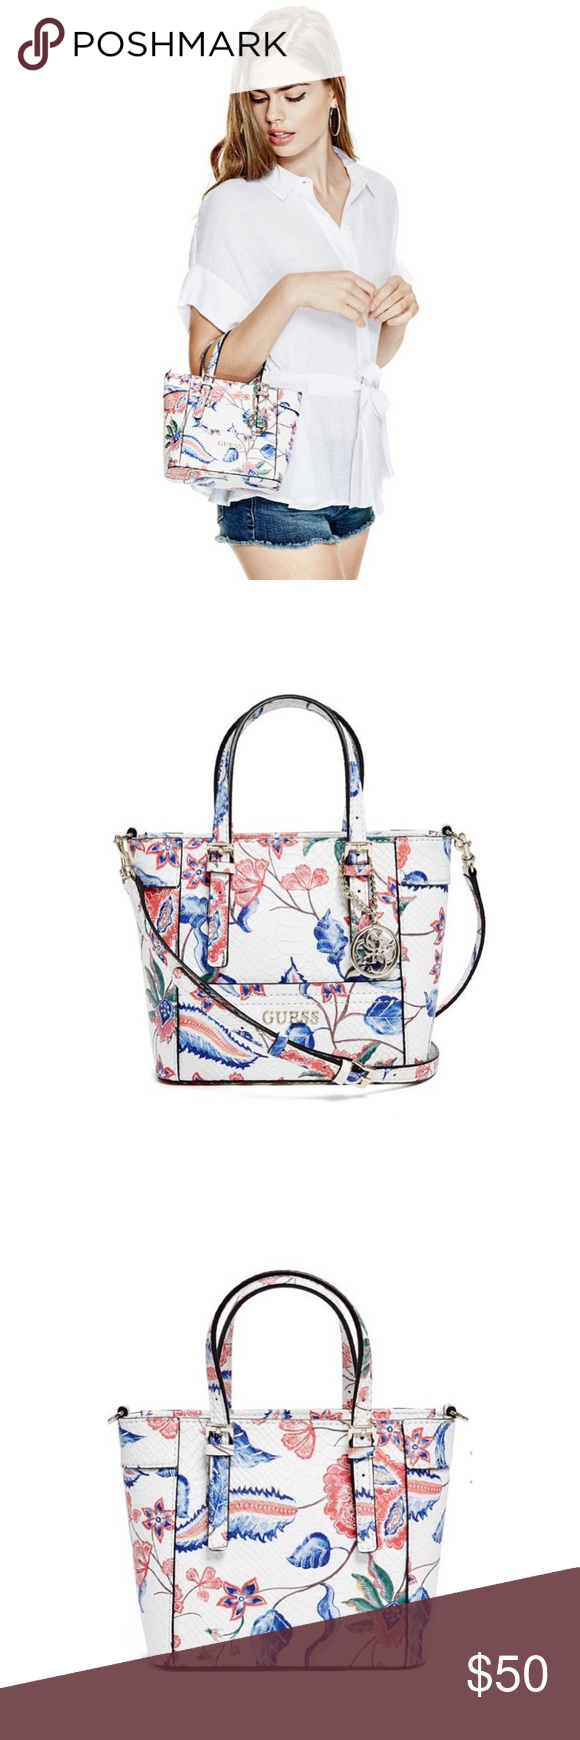 🆕Guess Delaney Floral Mini Tote Popular Guess mini floral small tote.  Currently out of stock. Brand New! Never worn! Bag details are located in  last ... b42d17e6f4e0e